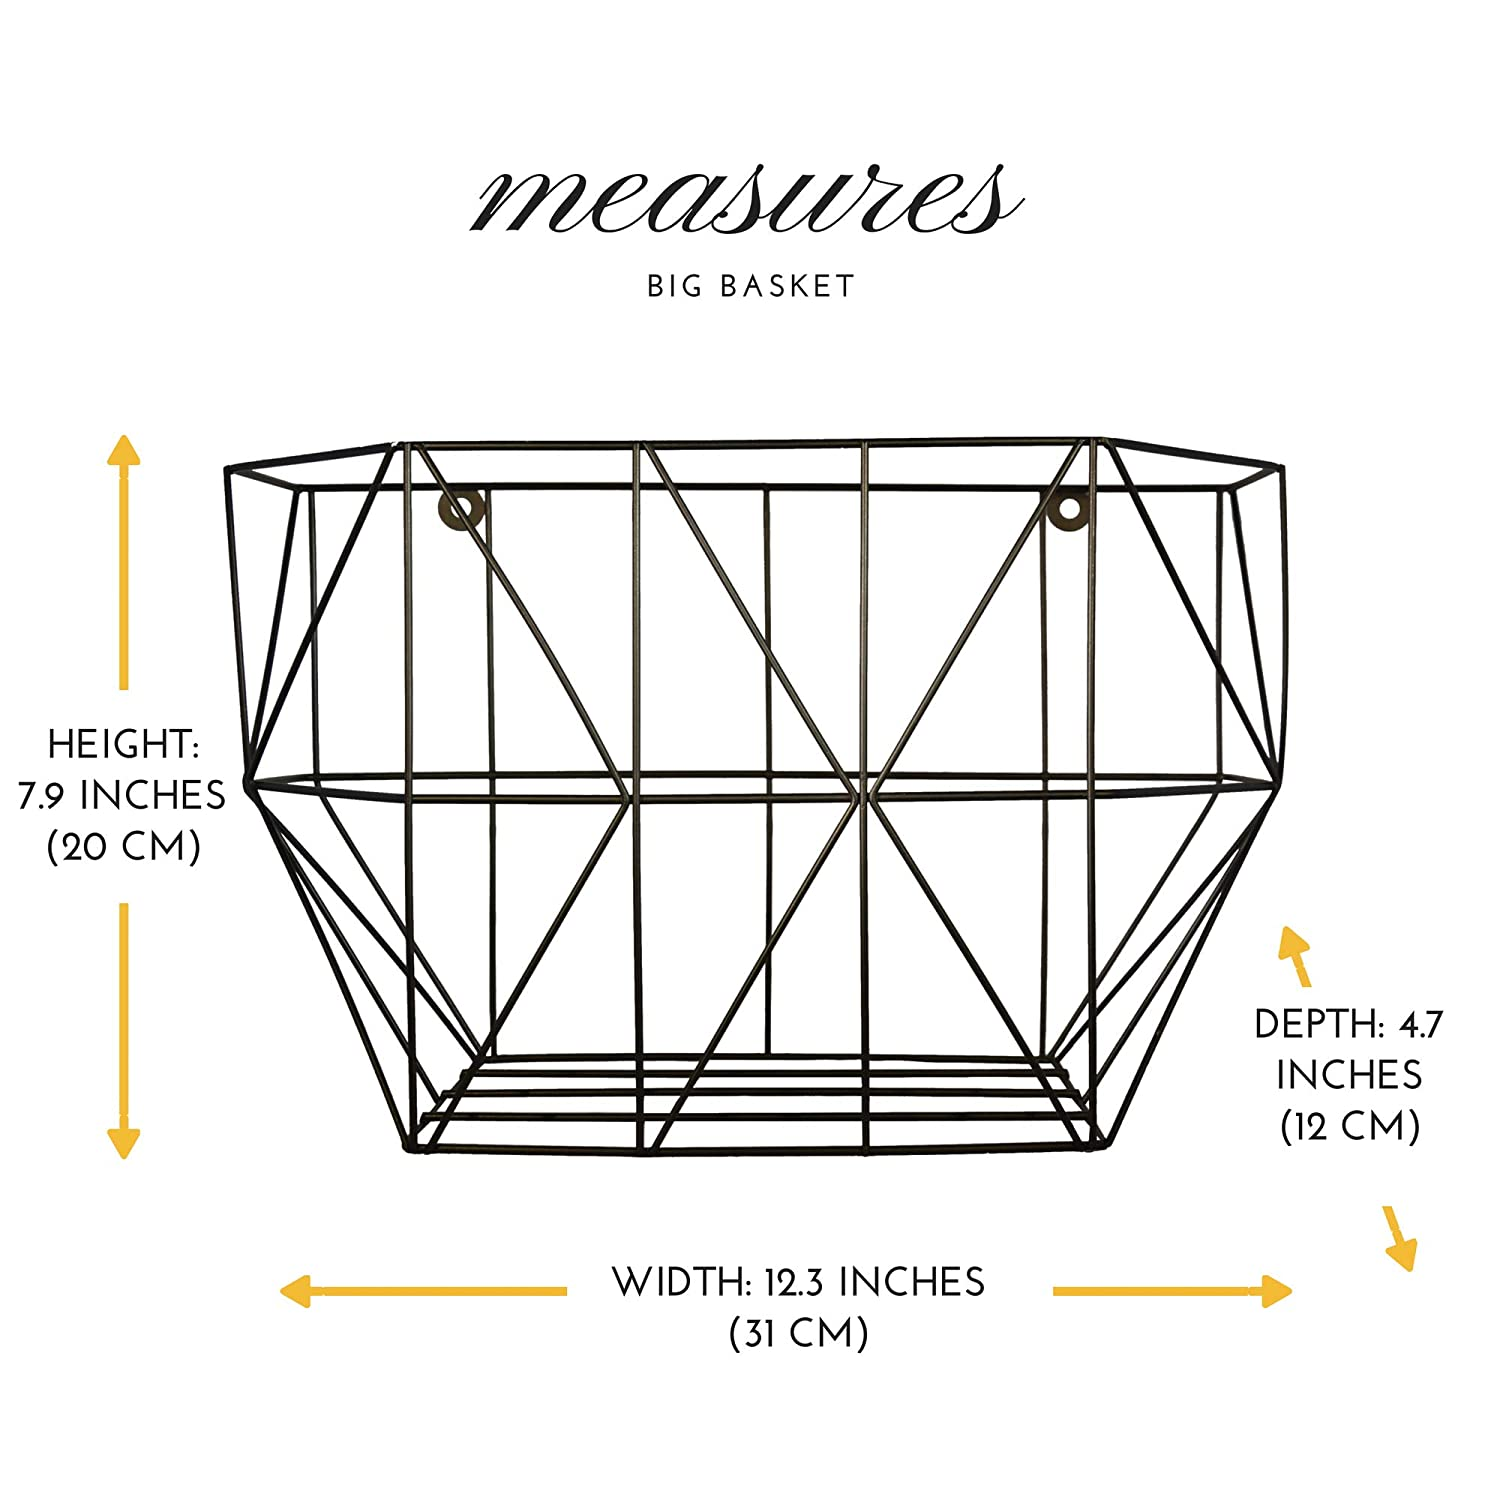 Wall Organizer Unit//Wire Baskets for Pantry for Use as Fruit or Produce Basket Scandinavian Hub Wall Fruit Basket with Hooks Farmhouse Wall Mounted Fruit Basket Set Wall Planter of 2 Black